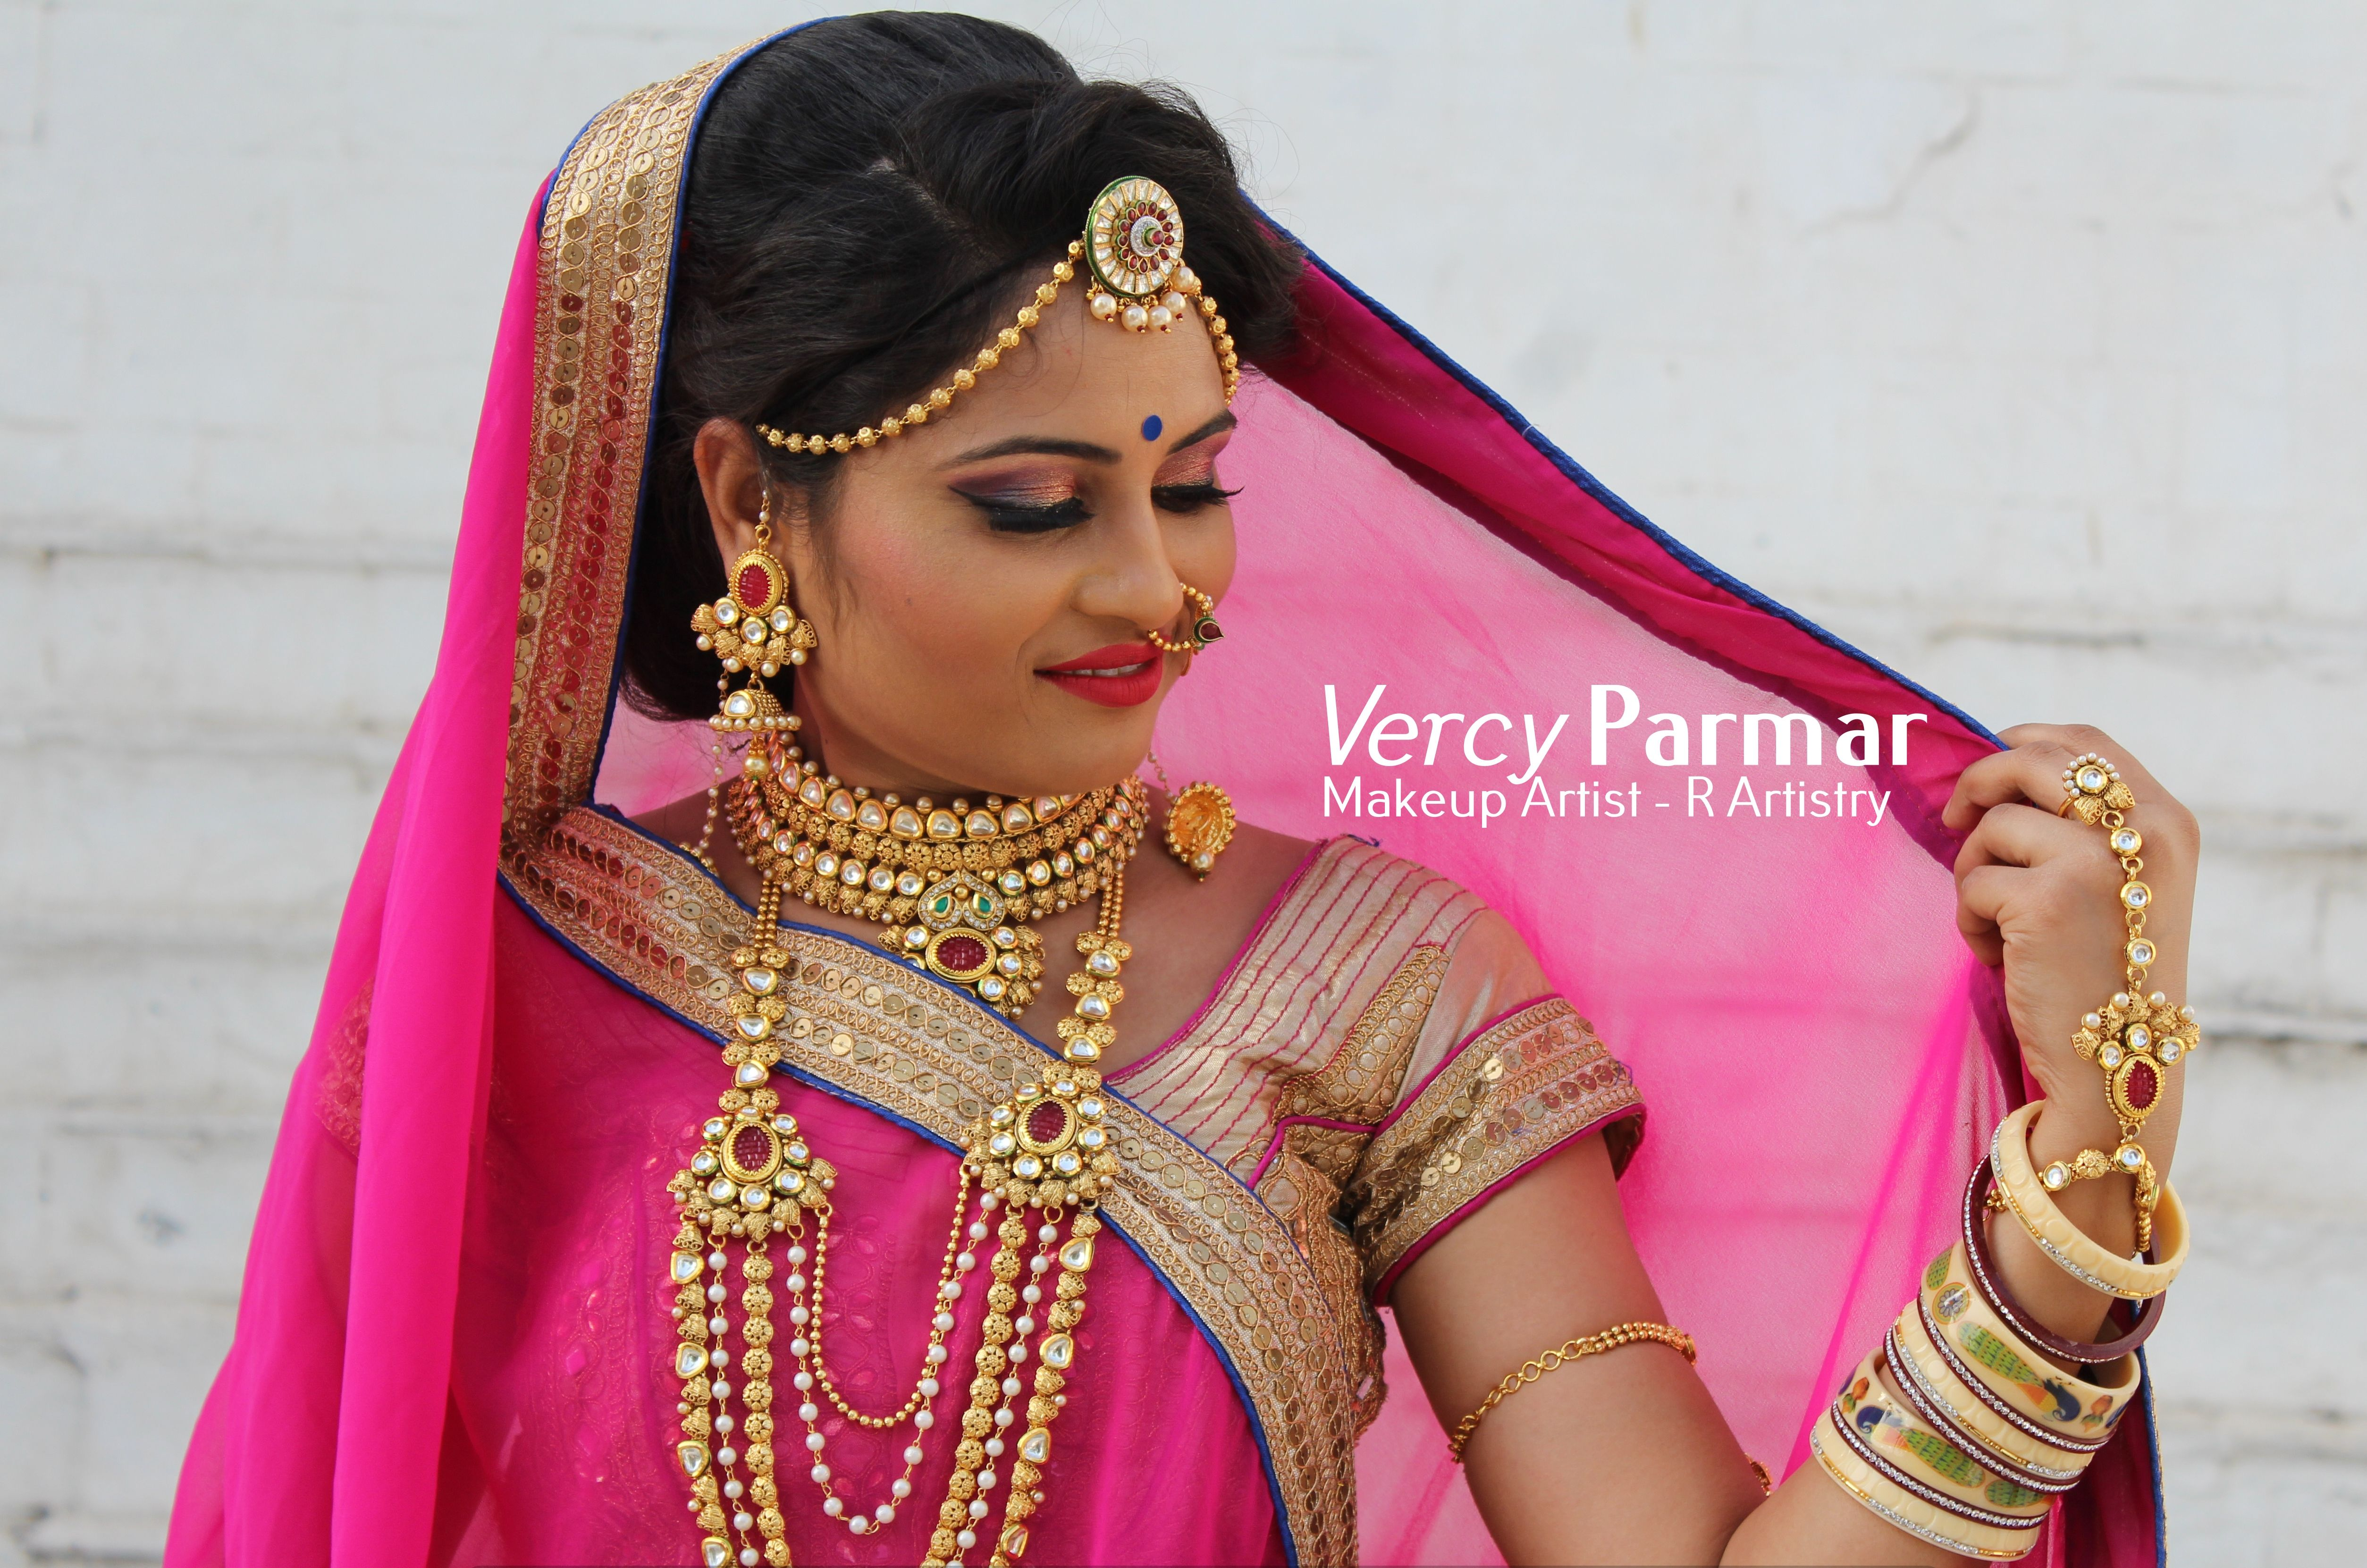 Vercy Parmar from R Artistry. The professional makeup artist based ...